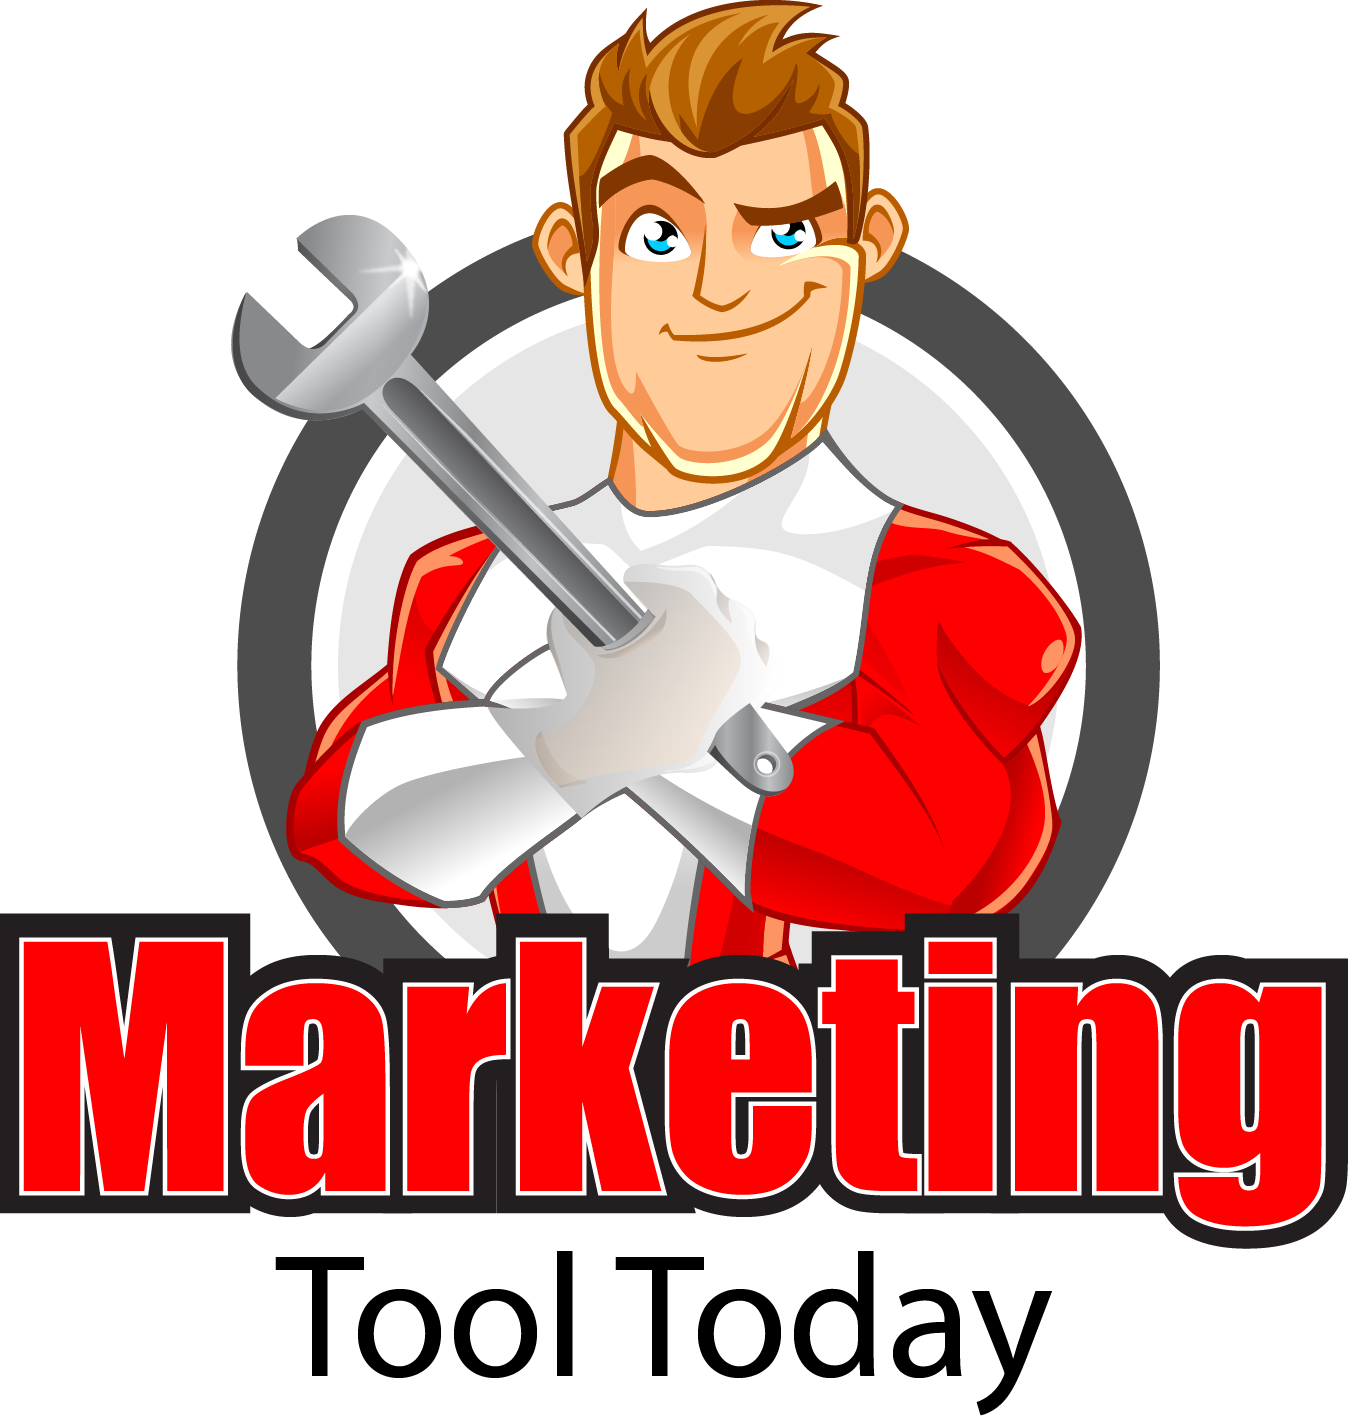 Free tools tool today. Marketing clipart internet marketing picture